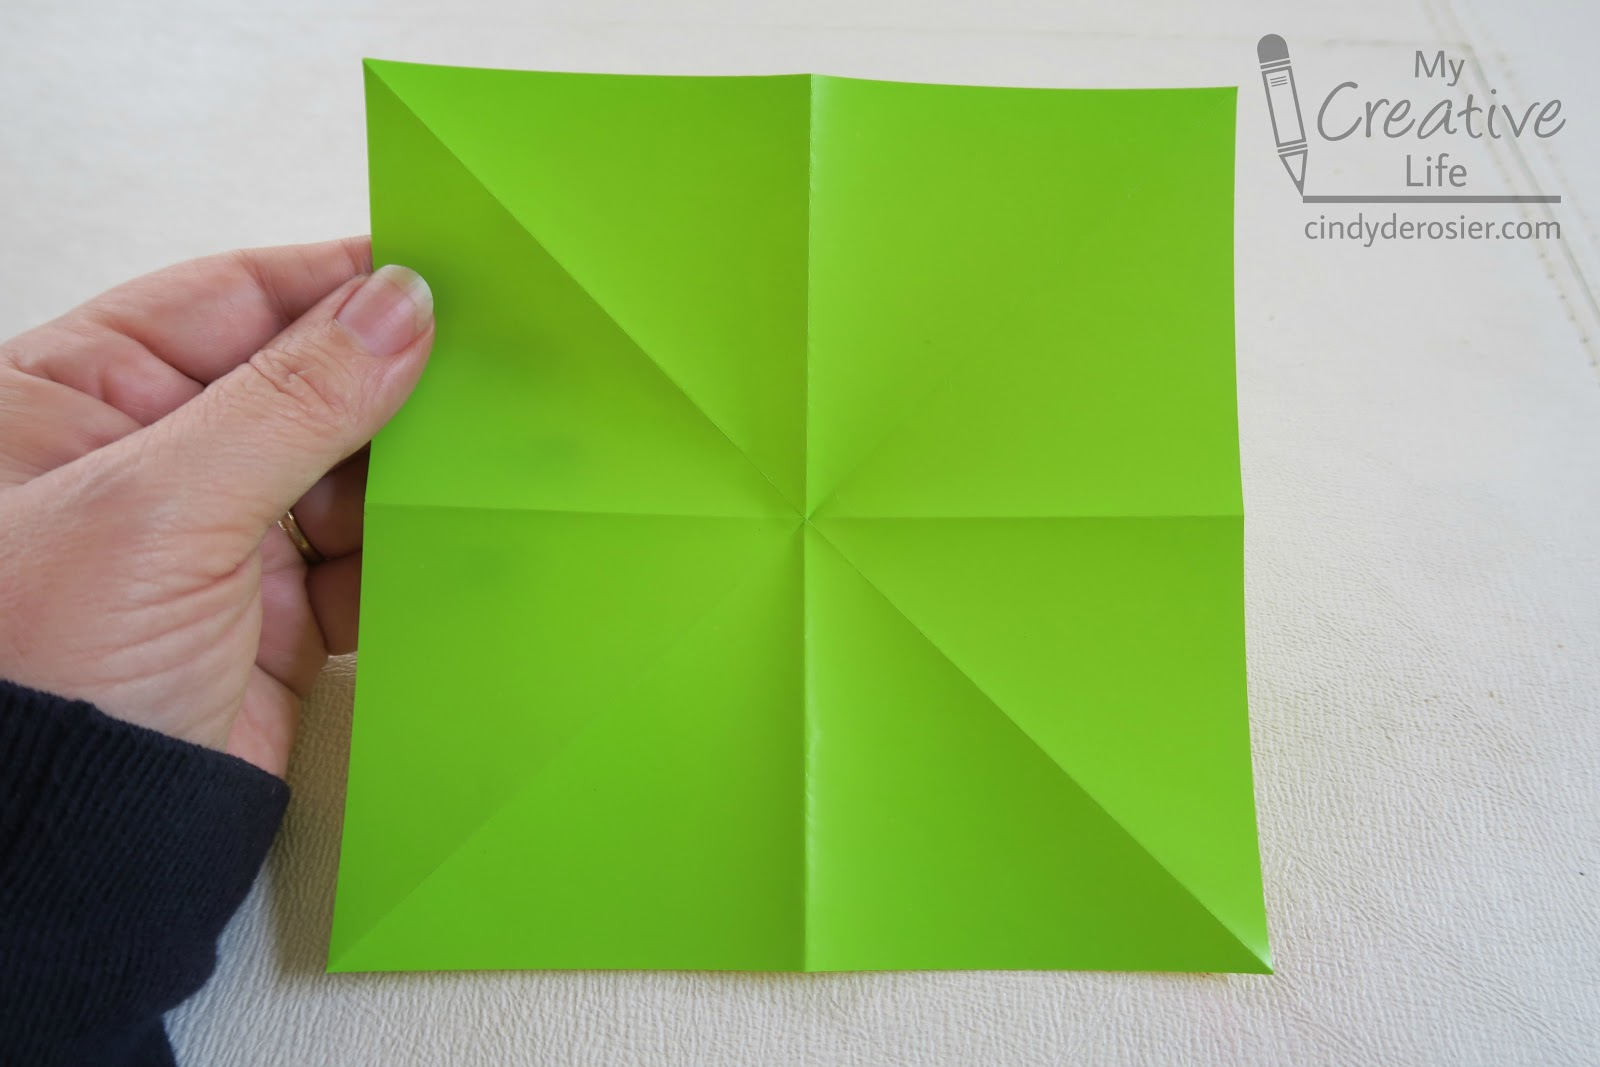 rotate the paper so that it looks like a diamond instead of a square pull the top left and right corners toward the bottom corner collapsing the sides